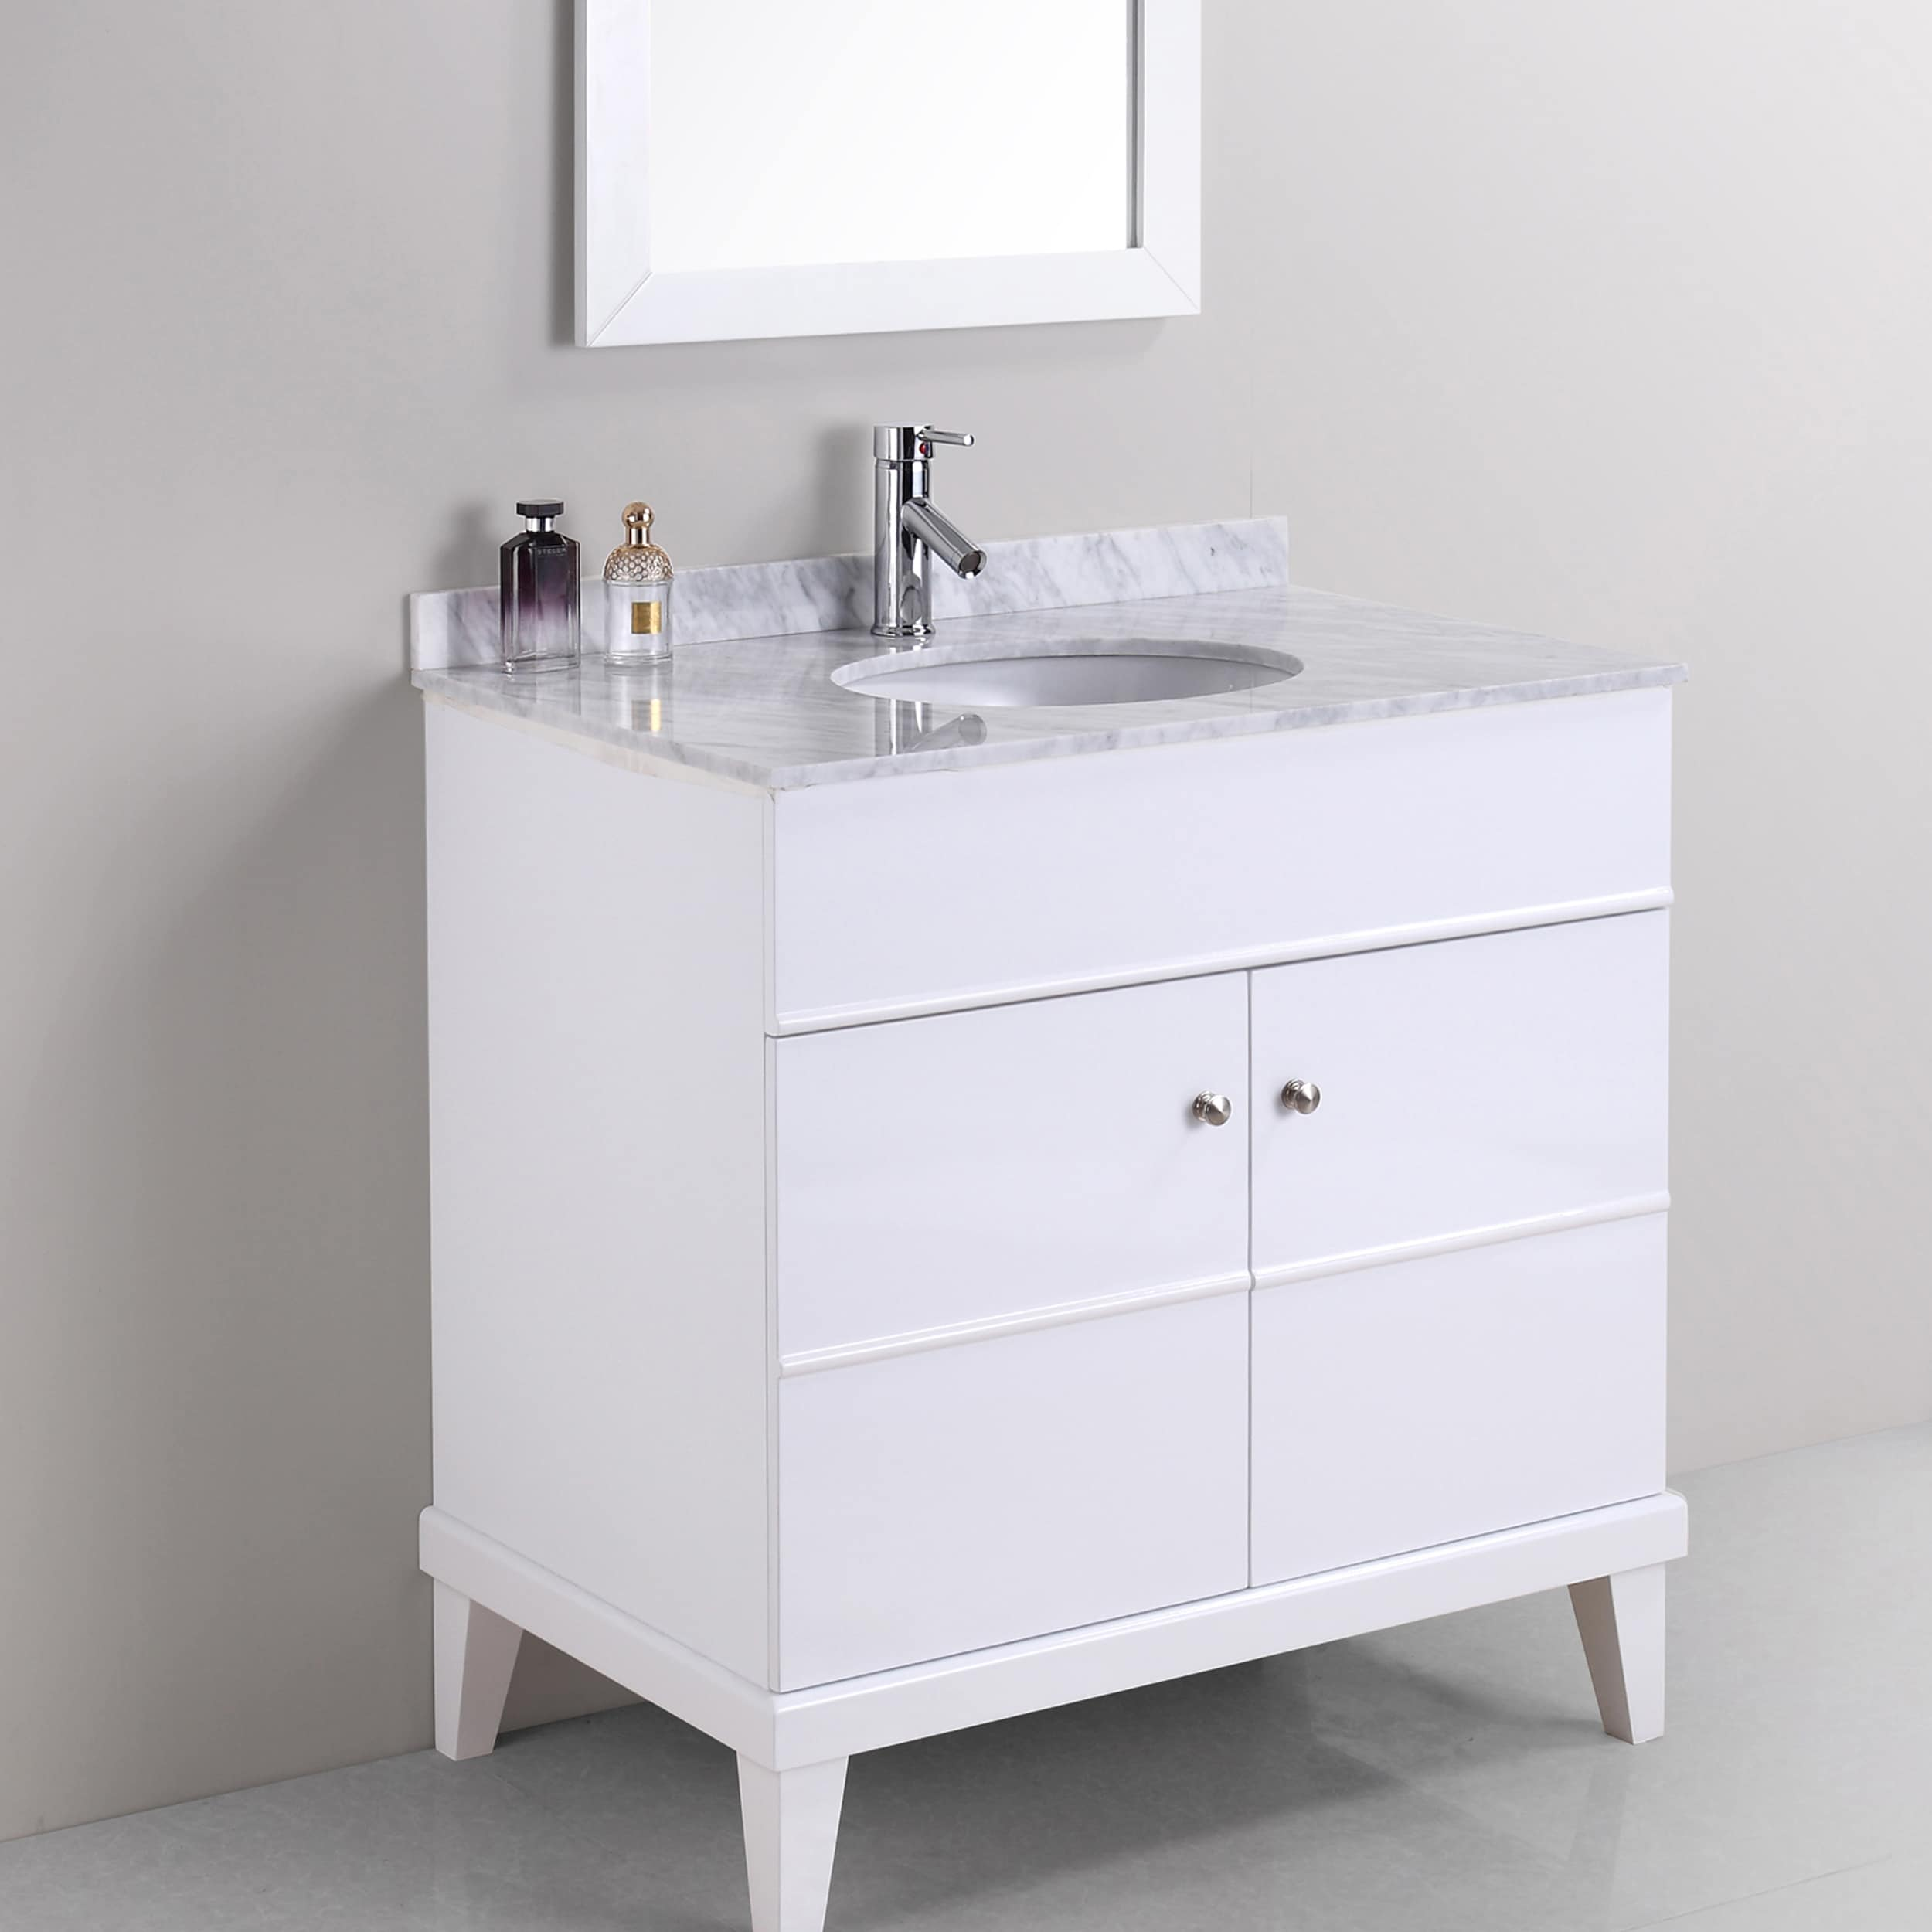 Shop Khloe 34-inch Single-sink Vanity Set - Free Shipping Today ...